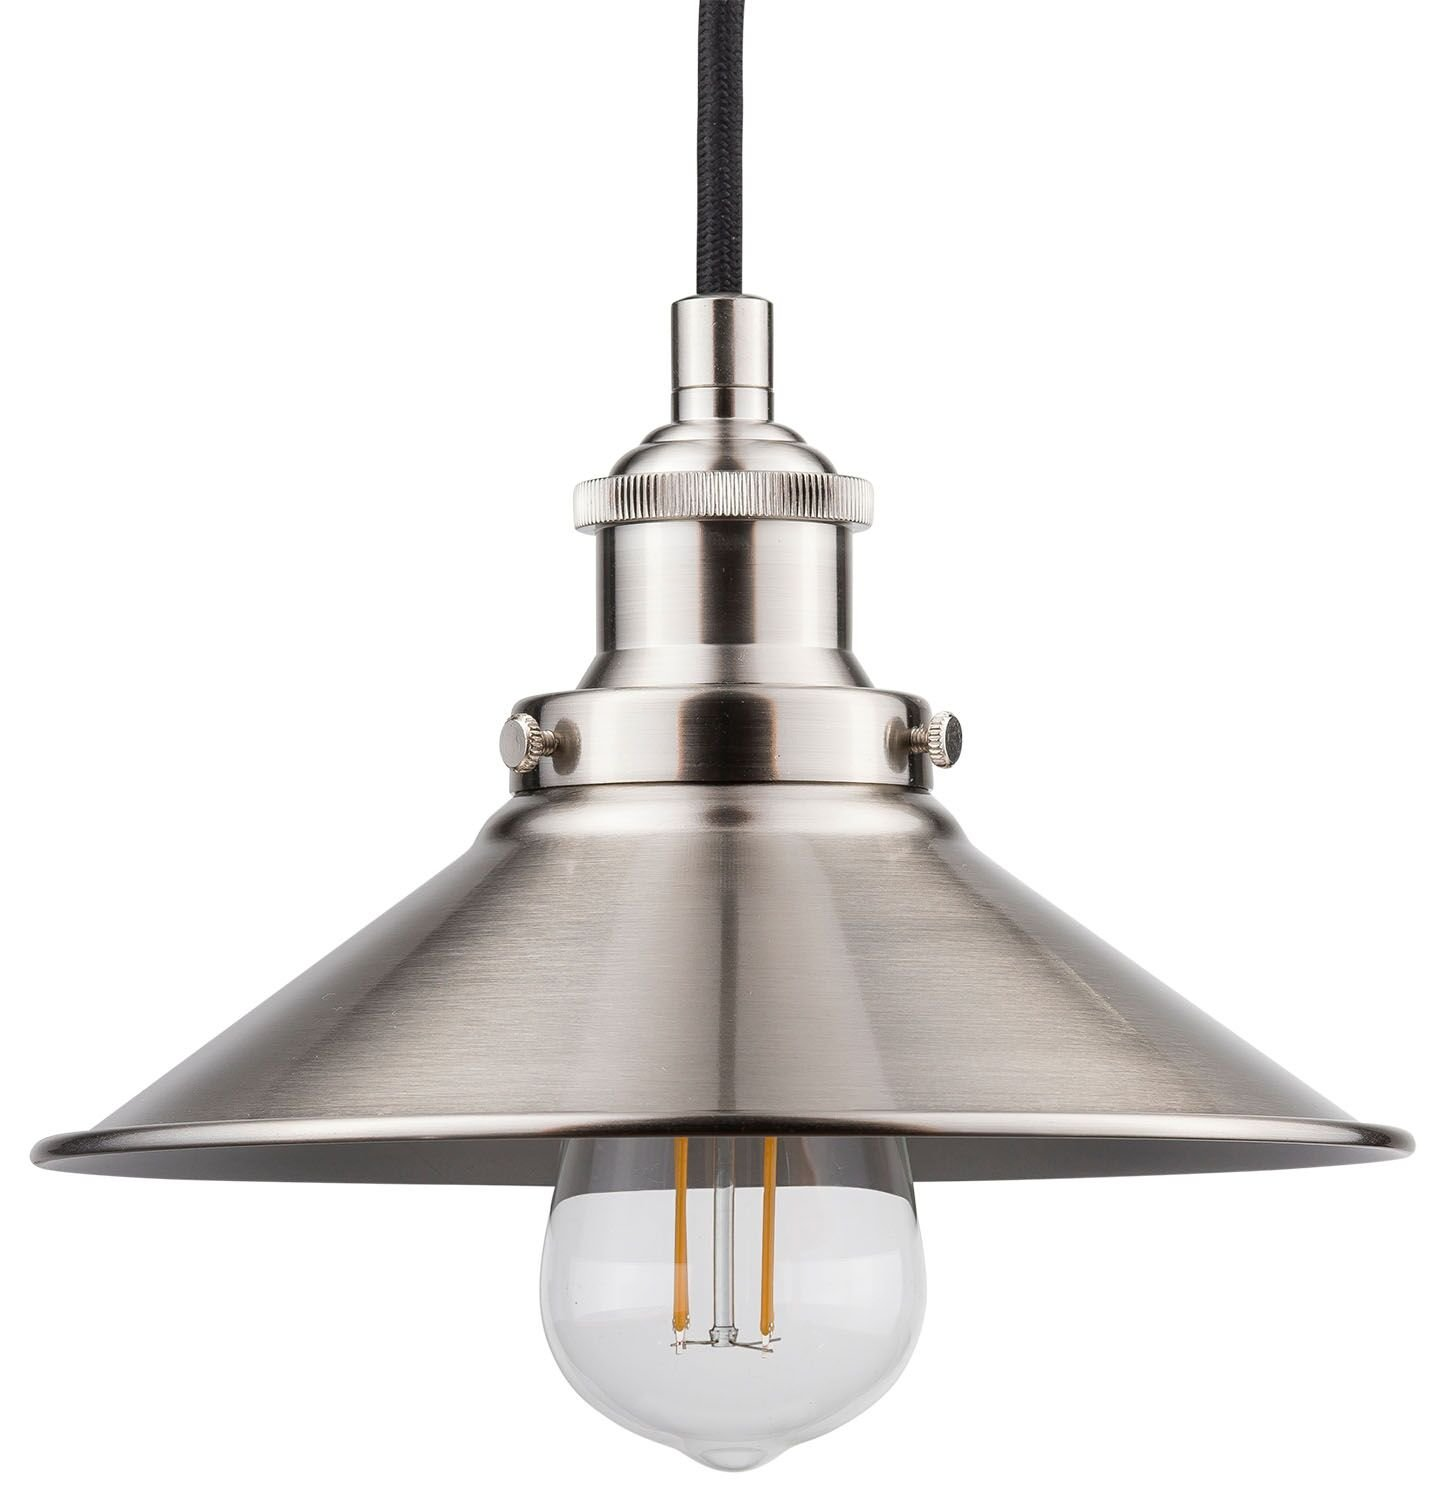 Andante LED Industrial Kitchen Pendant Light – Brushed Nickel Hanging Fixture - Linea di Liara LL-P407-LED-BN